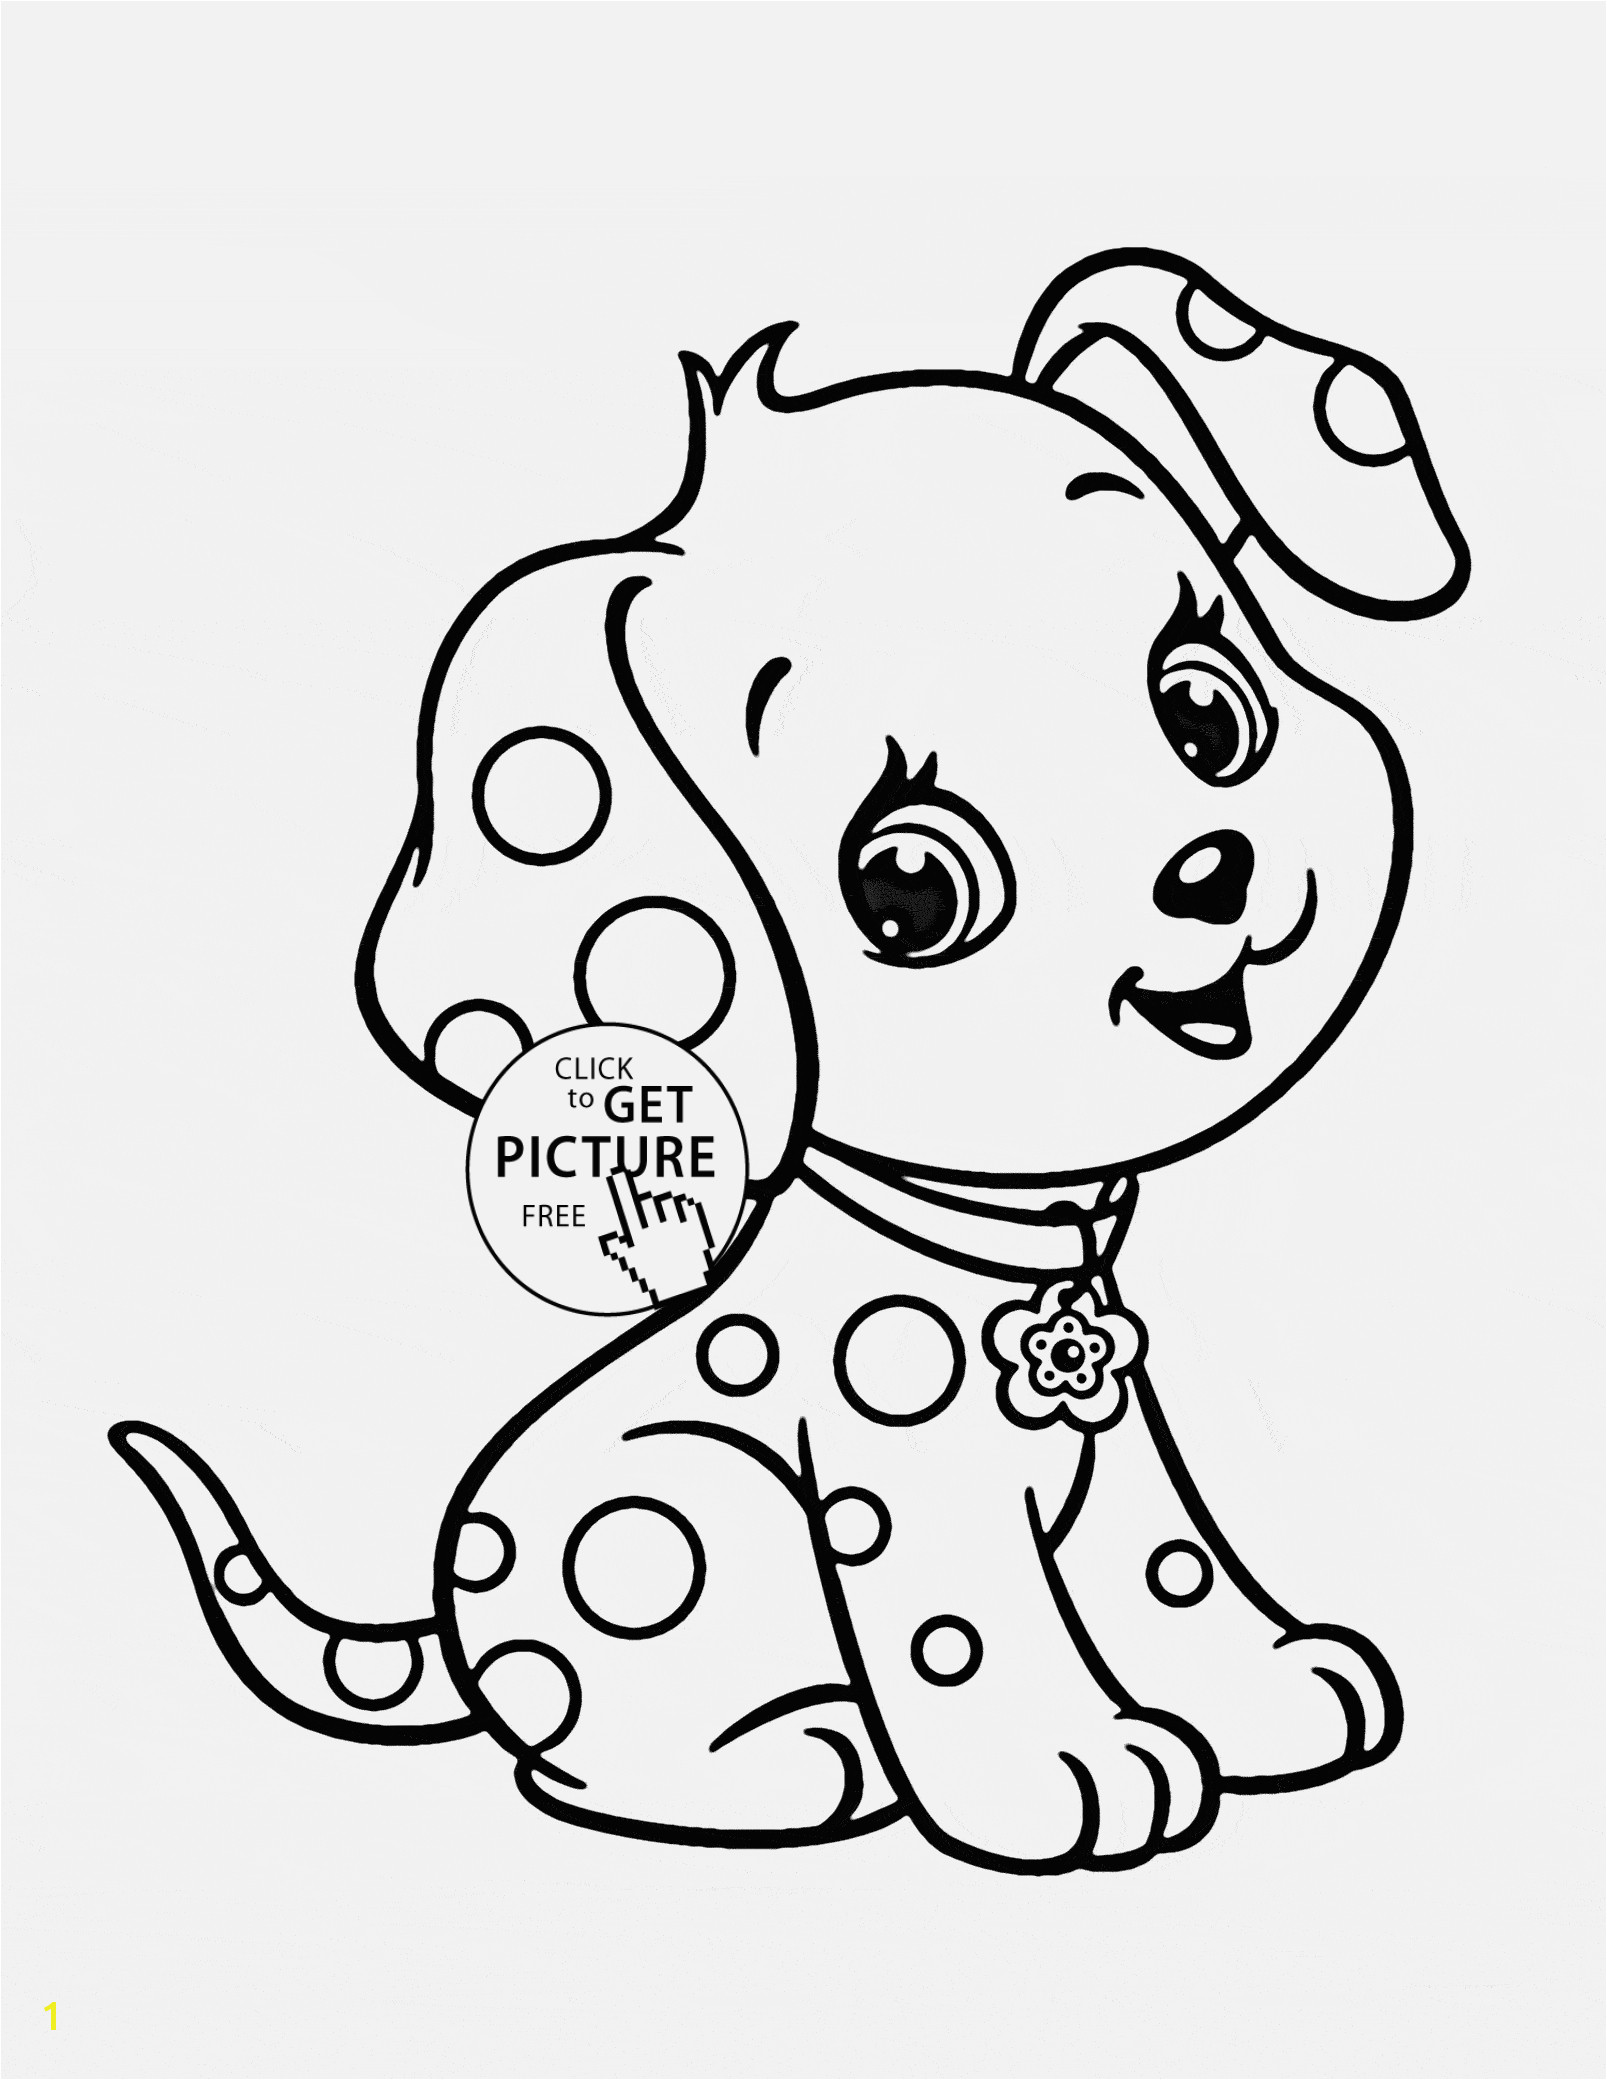 Free Cute Animal Coloring Pages 28 Free Animal Coloring Pages for Kids Download